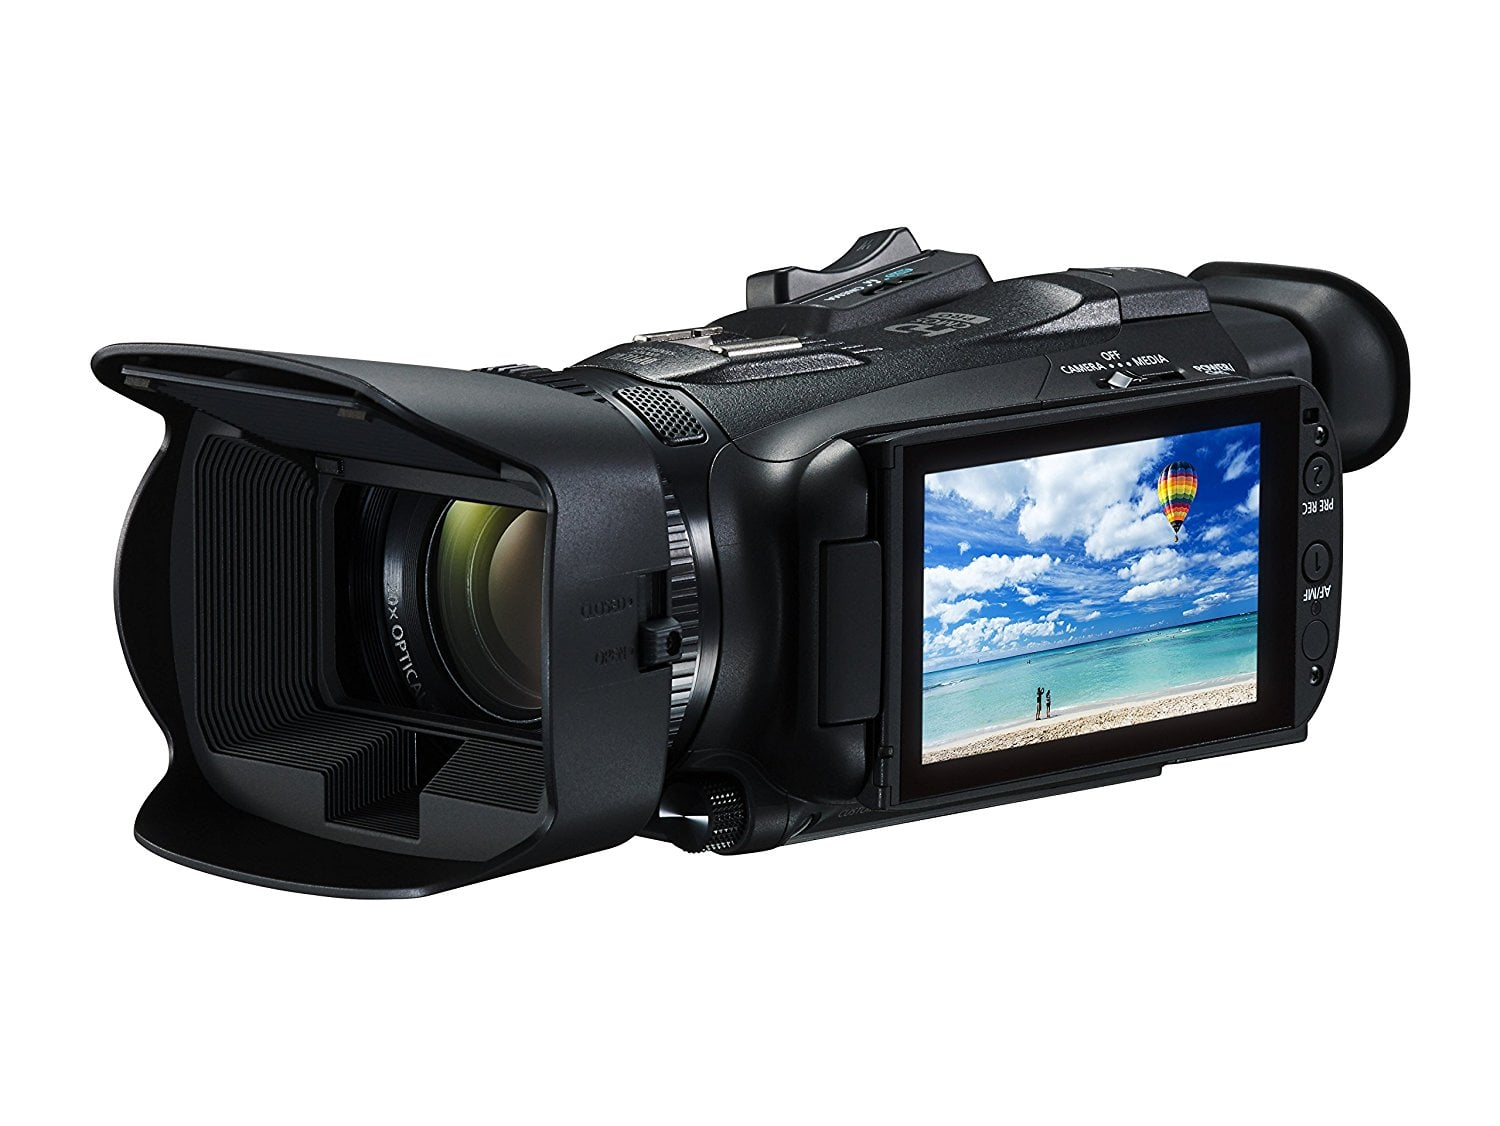 Canon Vixia HF G40 Full HD Camcorder Review